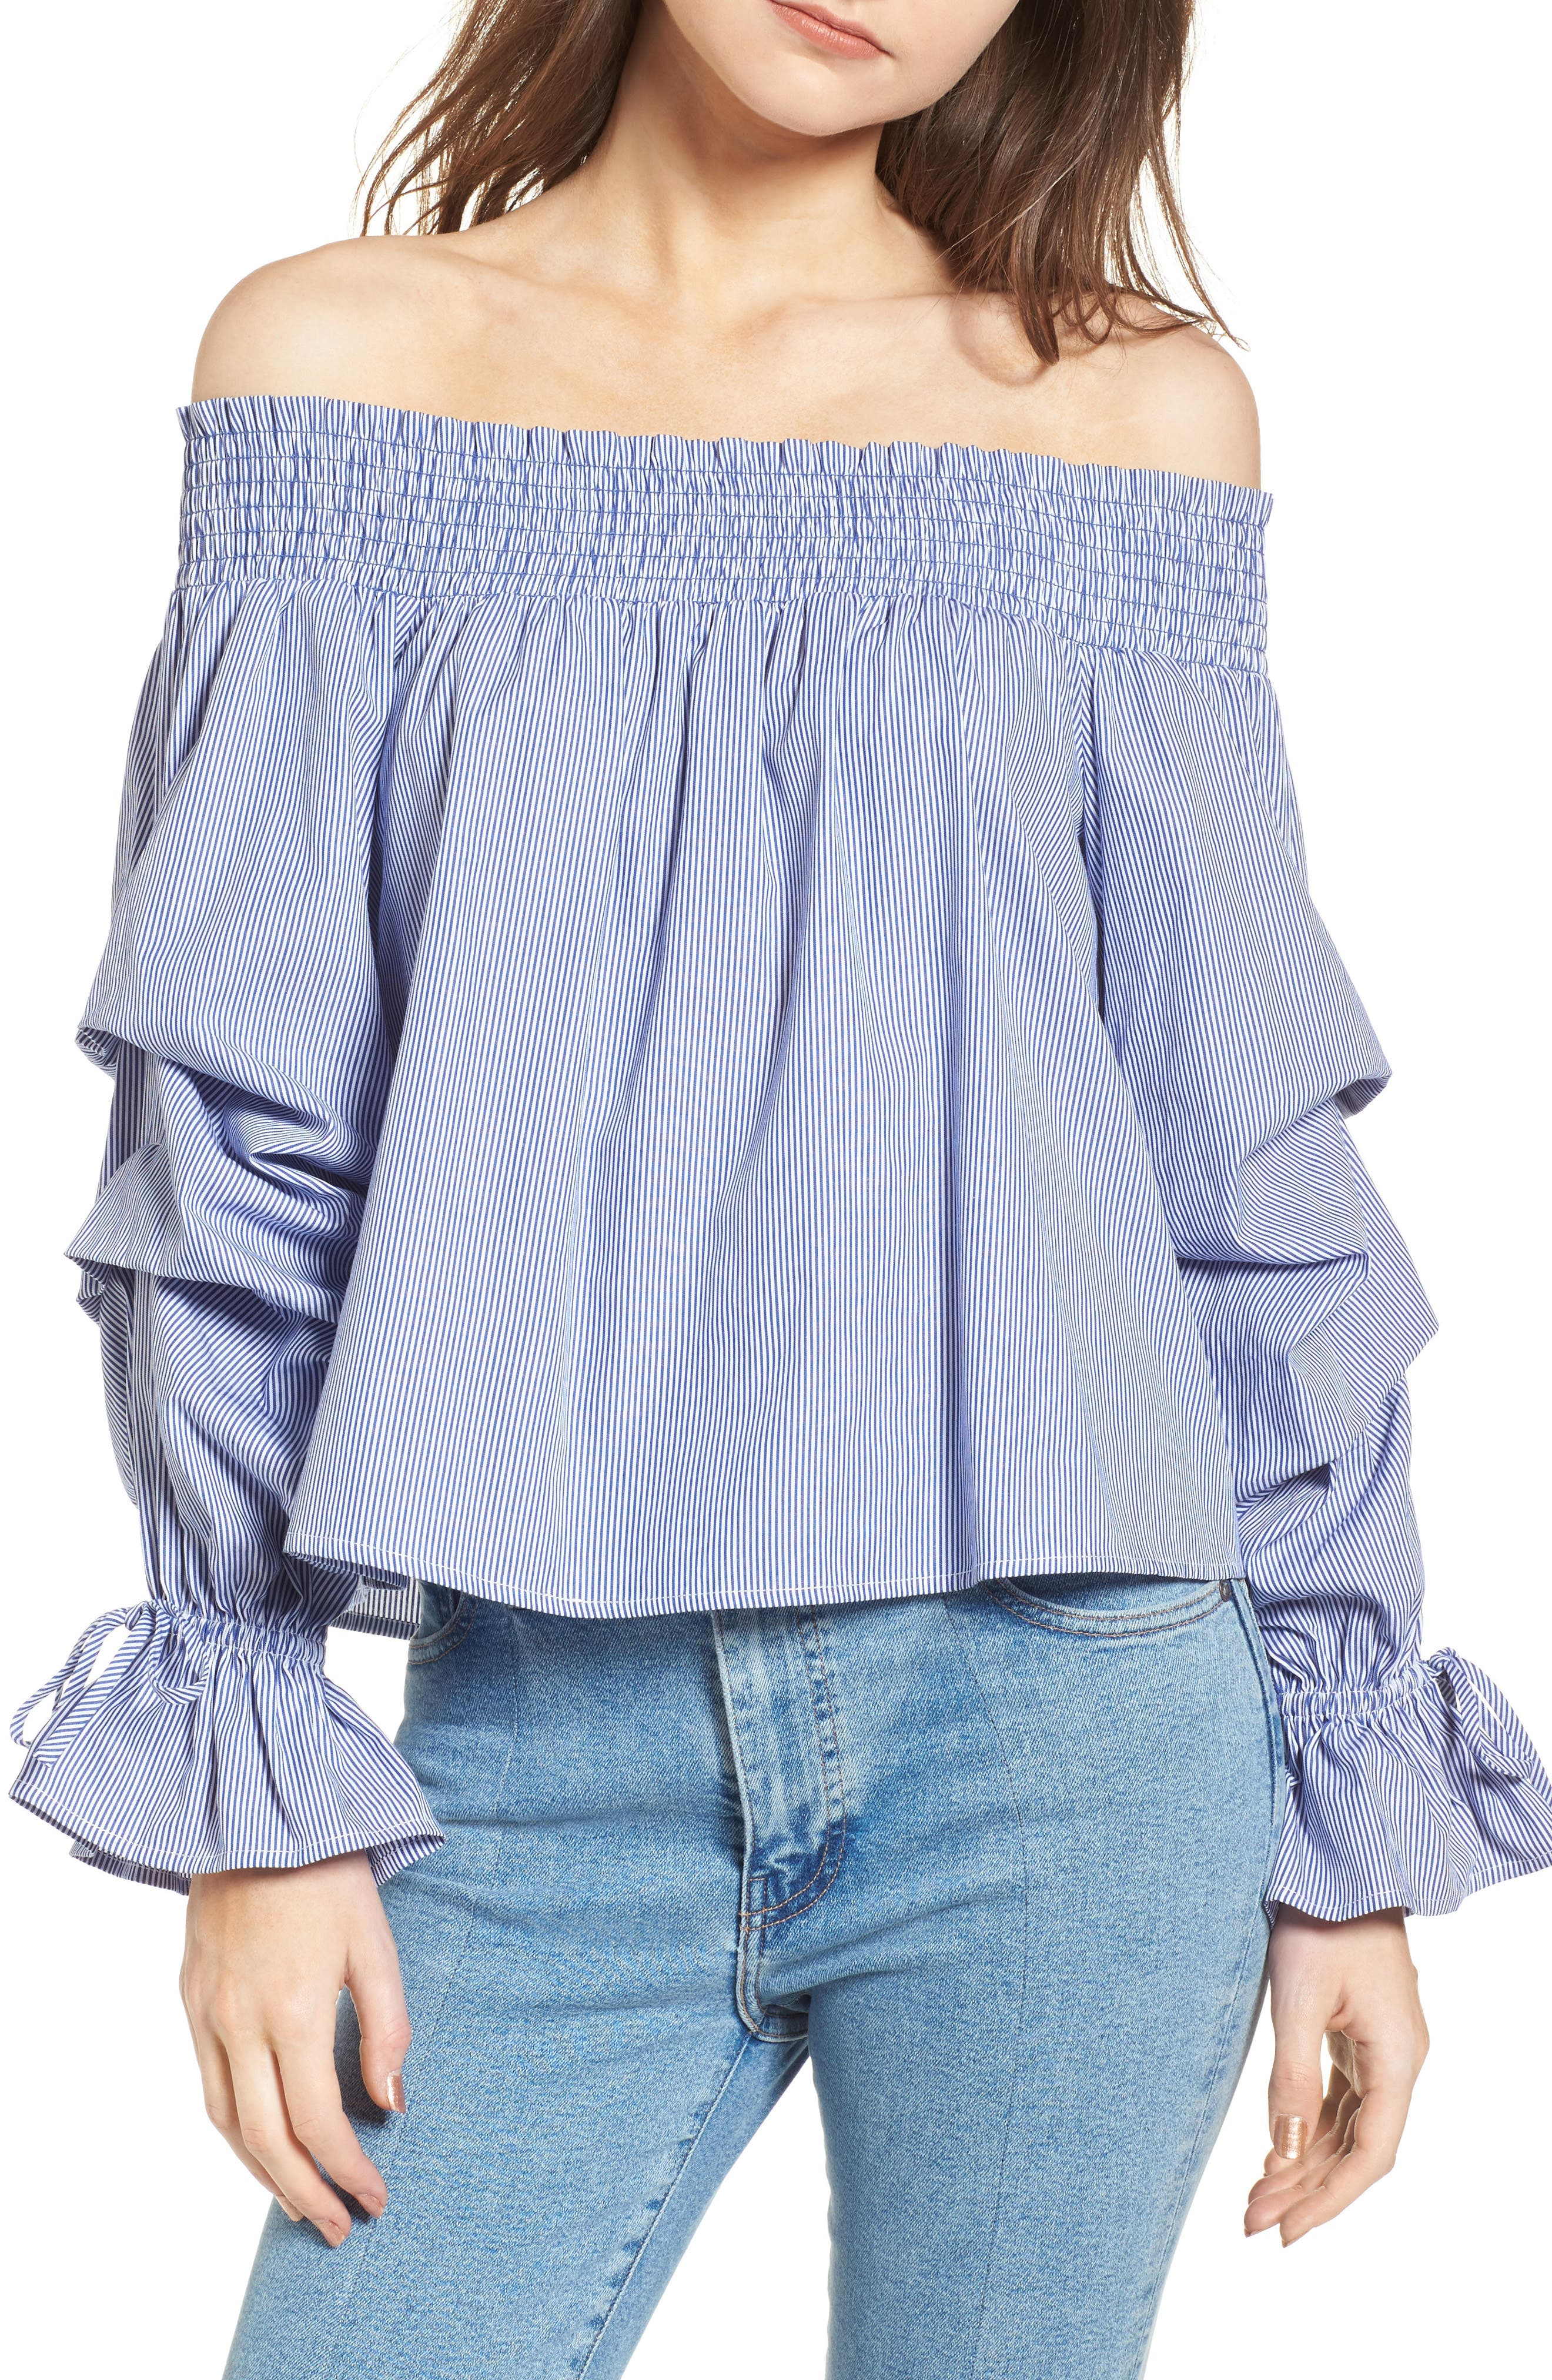 Alternate Image 1 Selected - Rebecca Minkoff Nicola Off the Shoulder Top